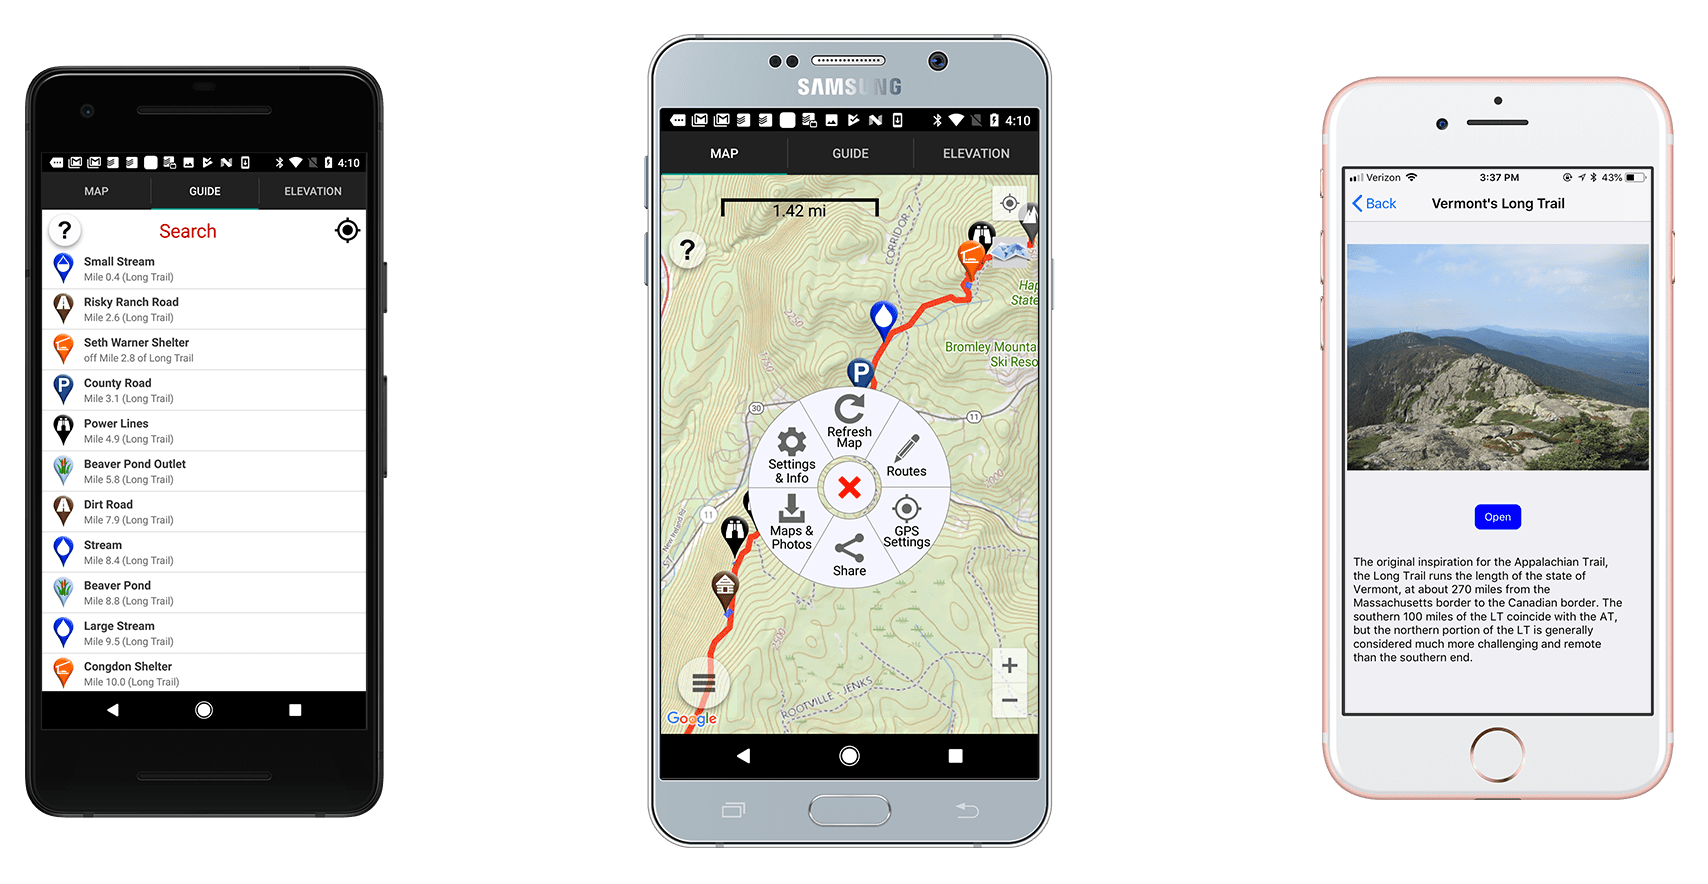 The Long Trail Hiking Guide - Guthook Guides